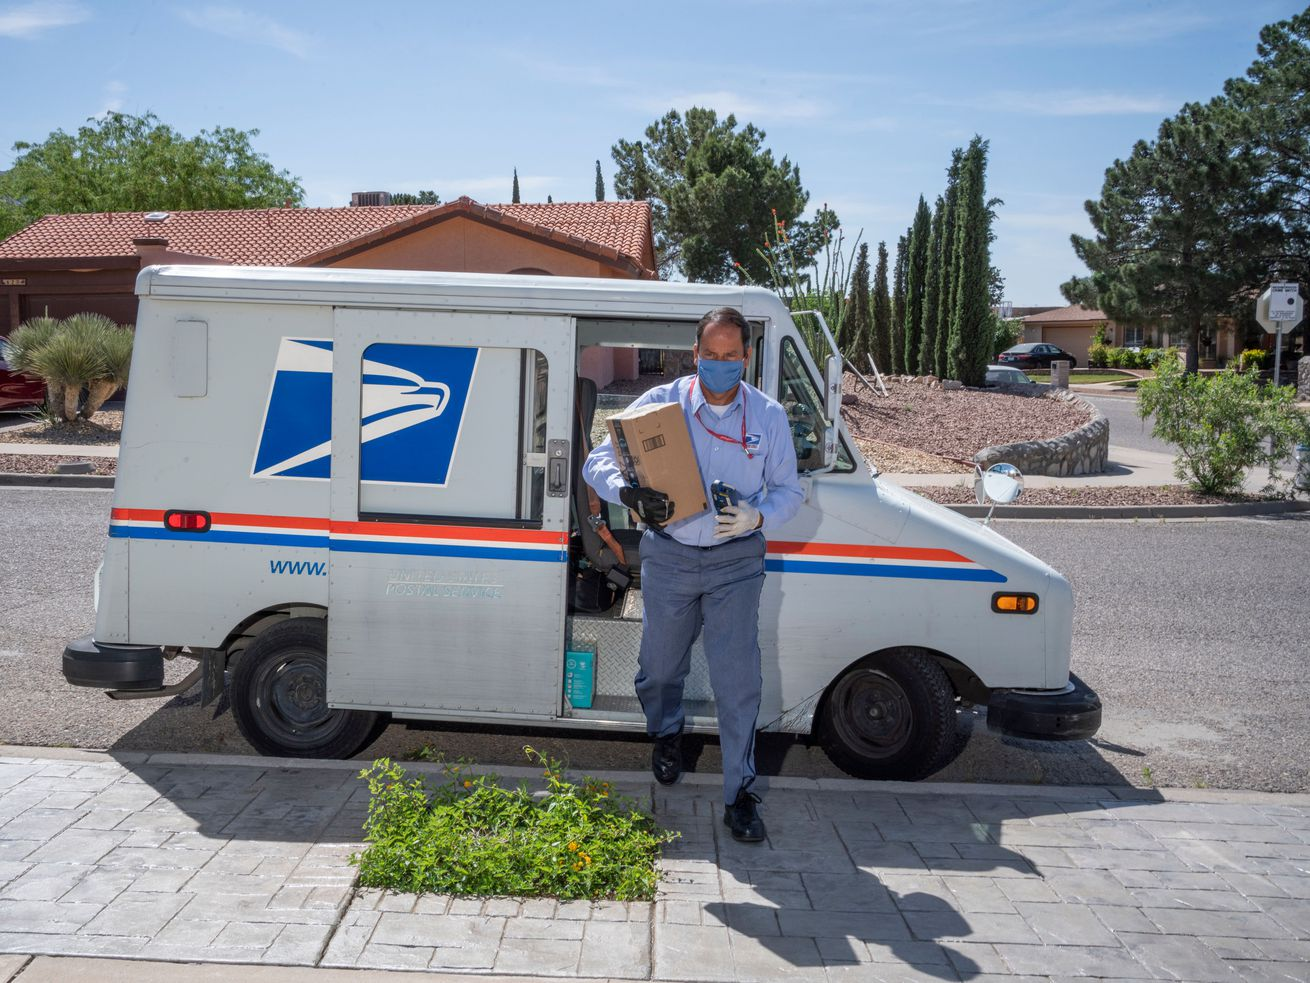 A postal employee carrying a package from their van.